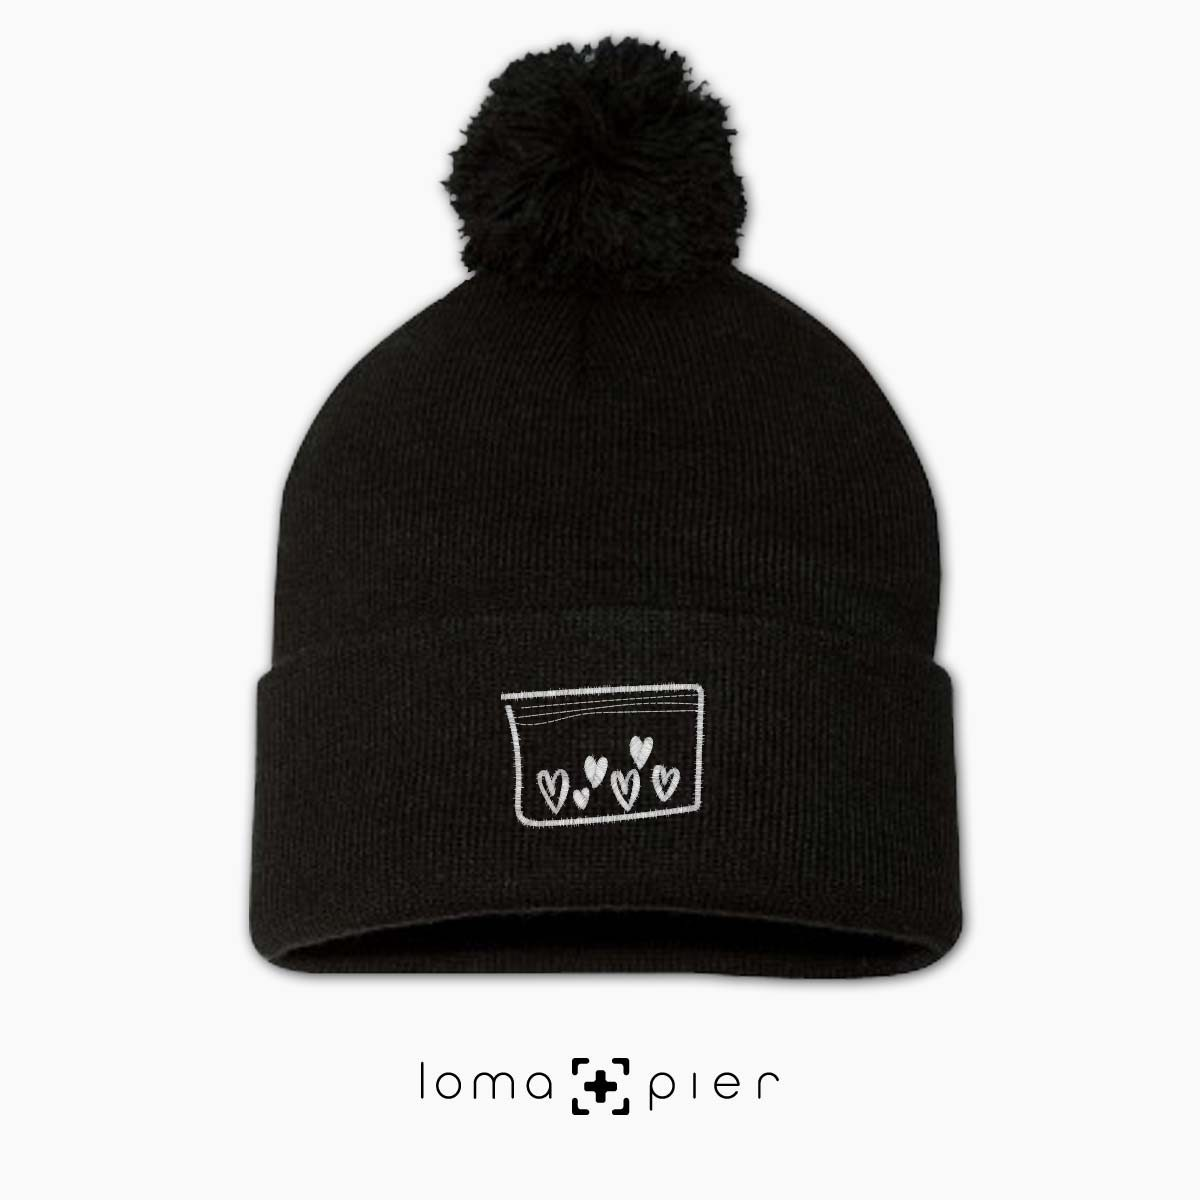 LOVE DRUG icon embroidered on a black pom pom beanie with white thread by loma+pier hat store